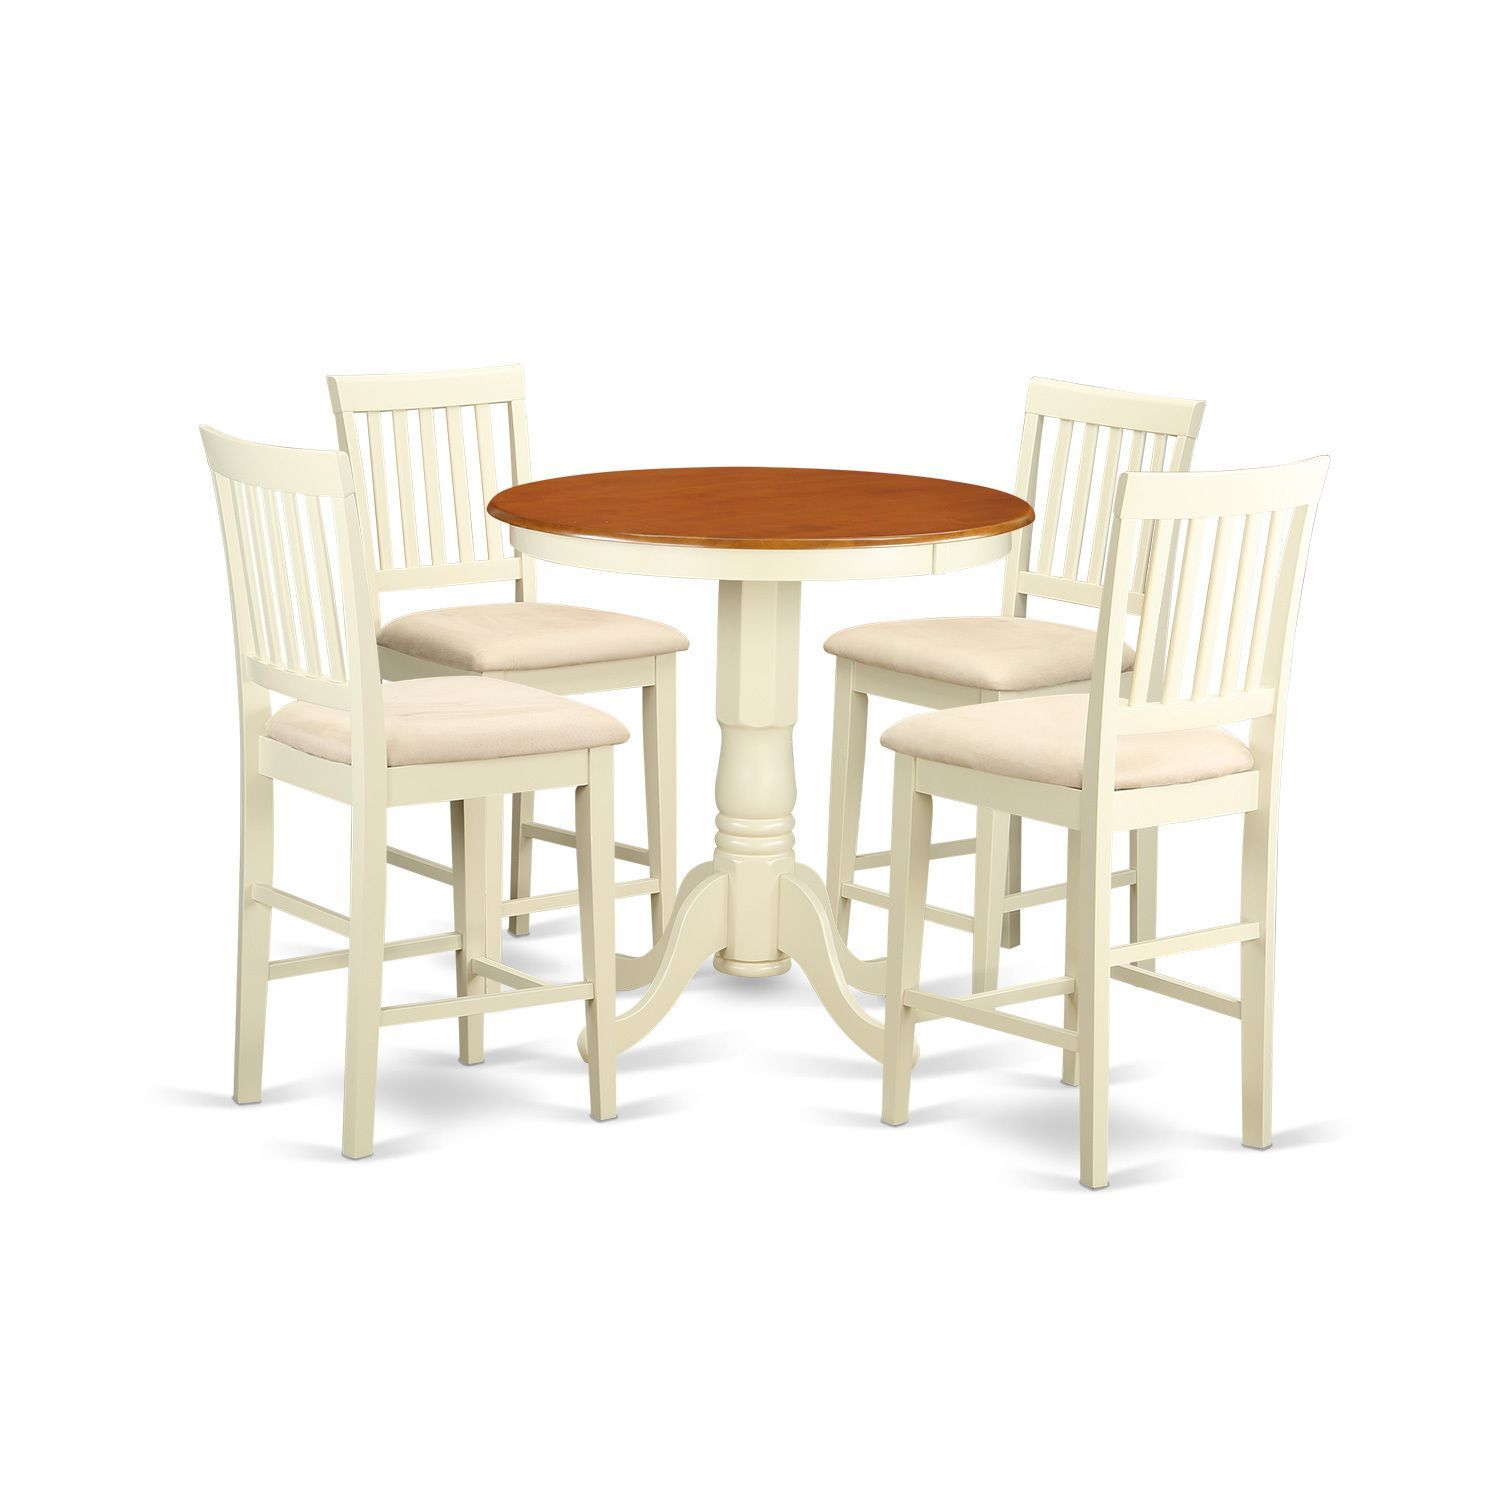 Cream and Off-white (Beige) Solid Wood Five-piece Pub Table Kitchen ...